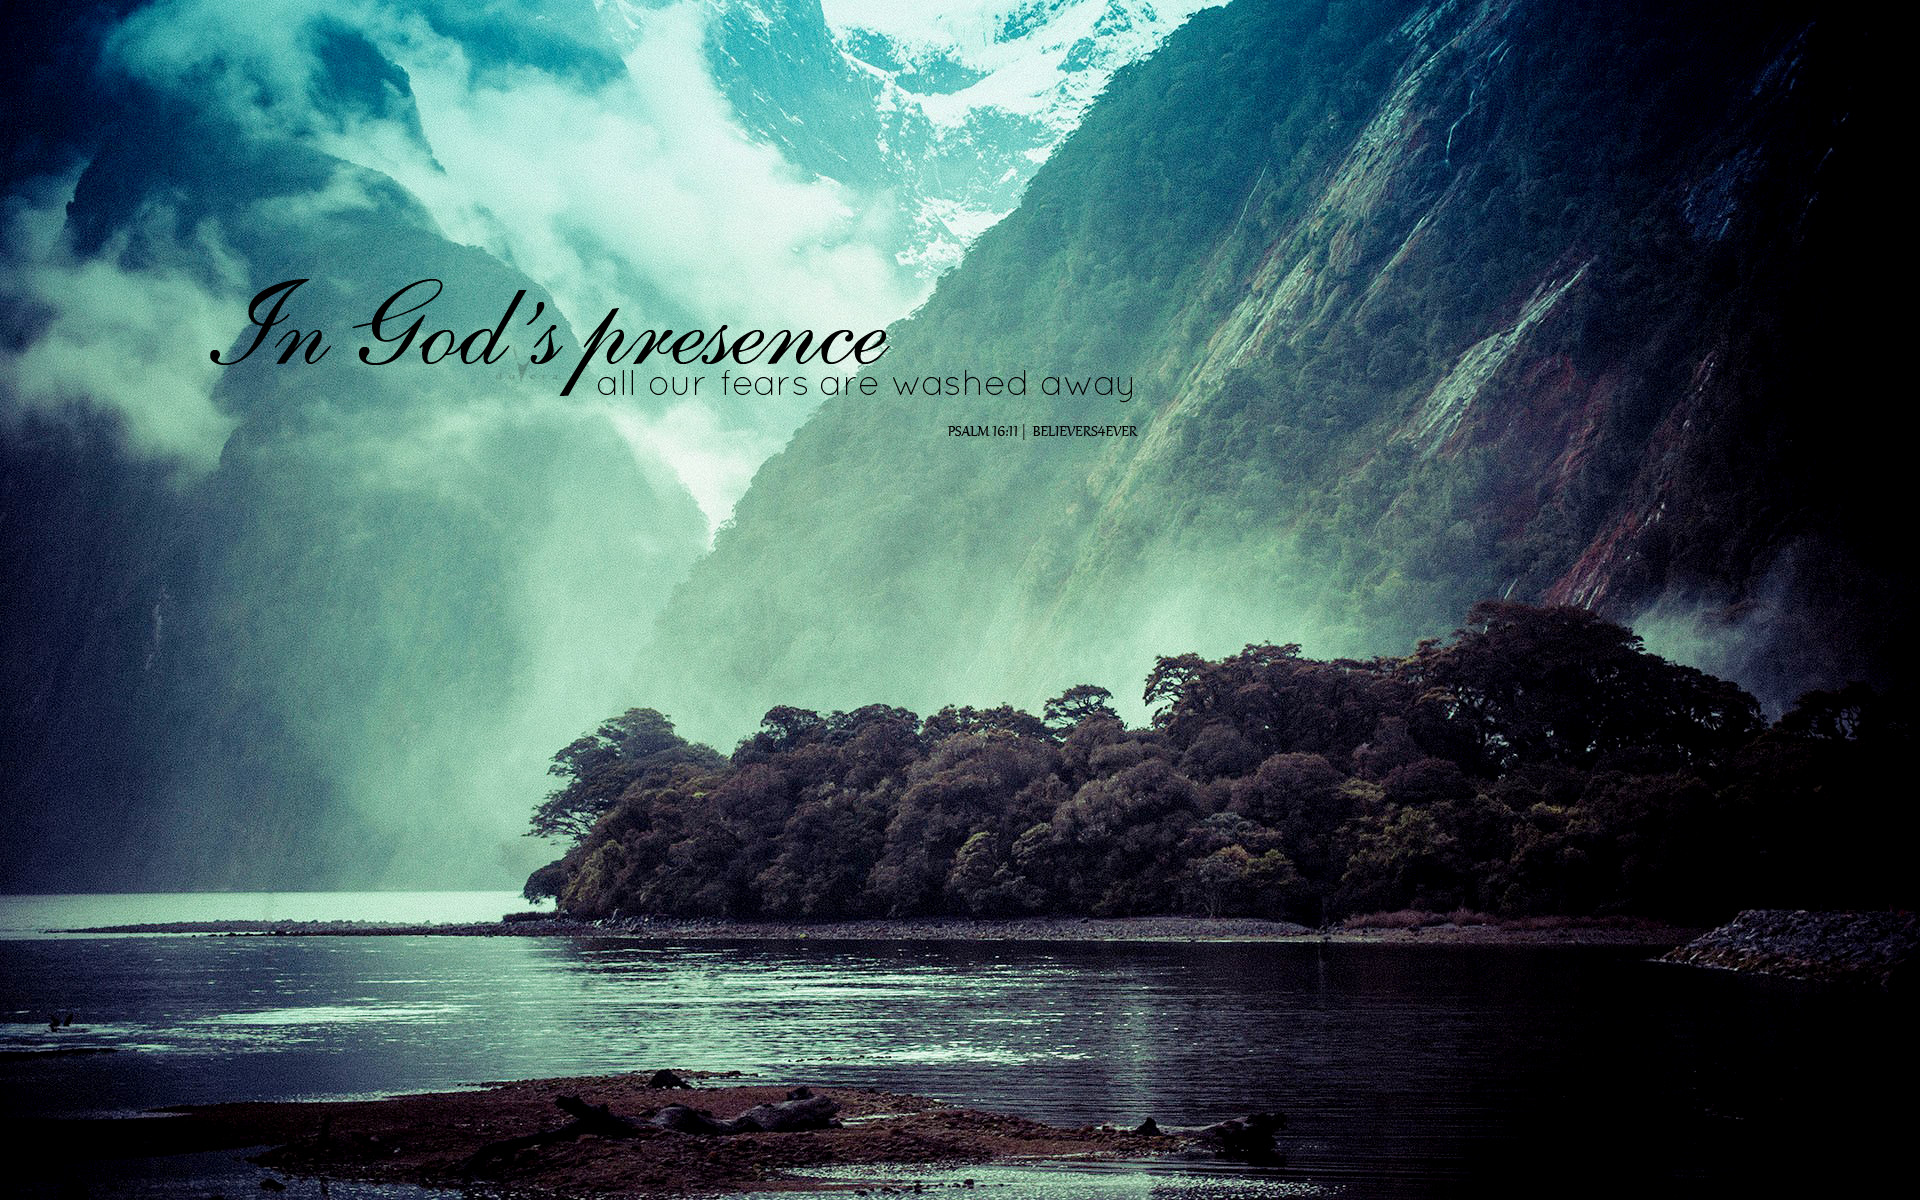 Res: 1920x1200, In God's presence, Psalm 16:11 Christian graphics, Christian wallpapers,  Christian desktop